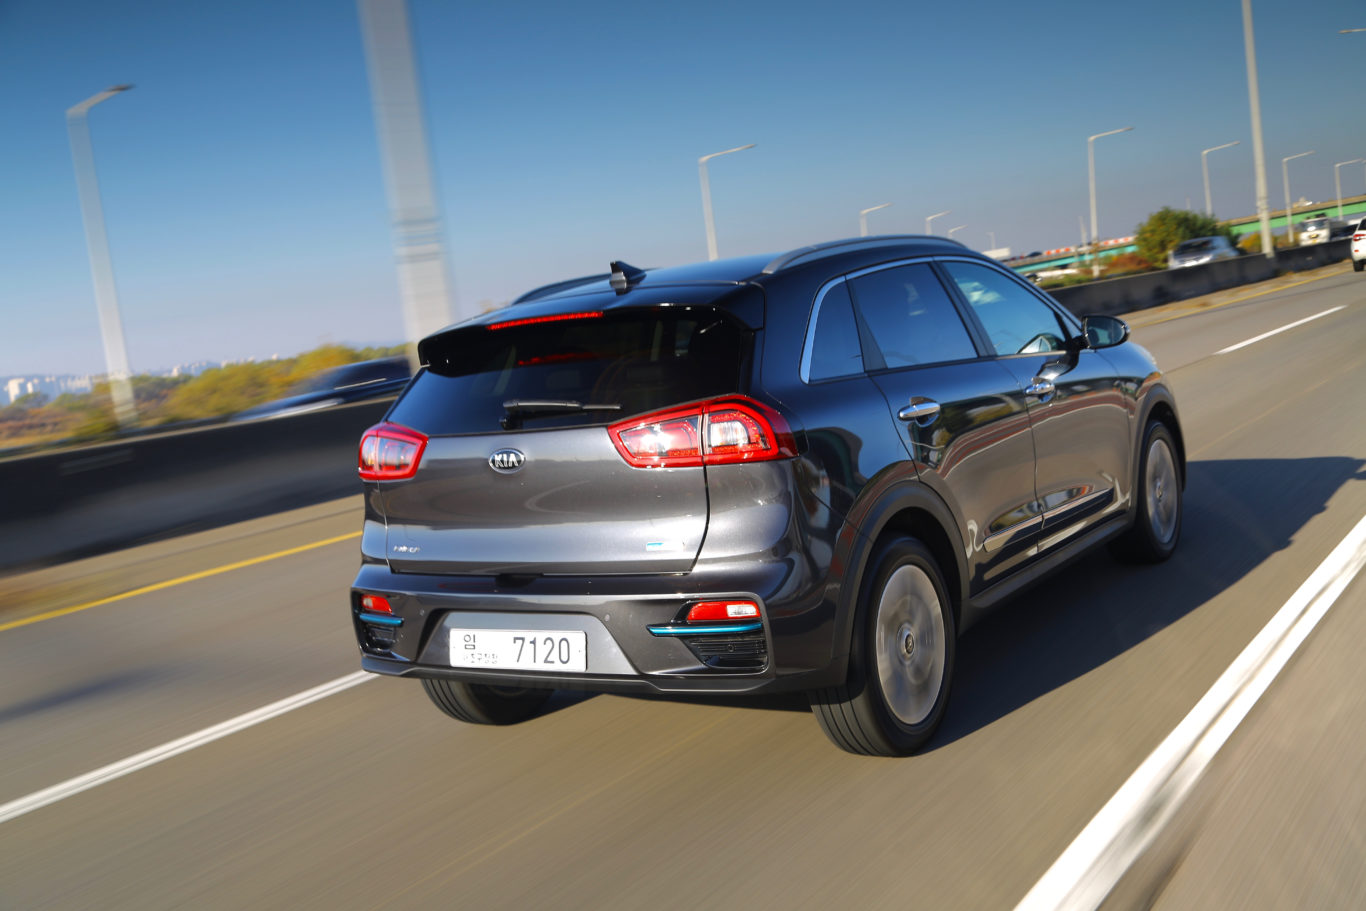 The e-Niro can travel a claimed 282 miles on a single charge